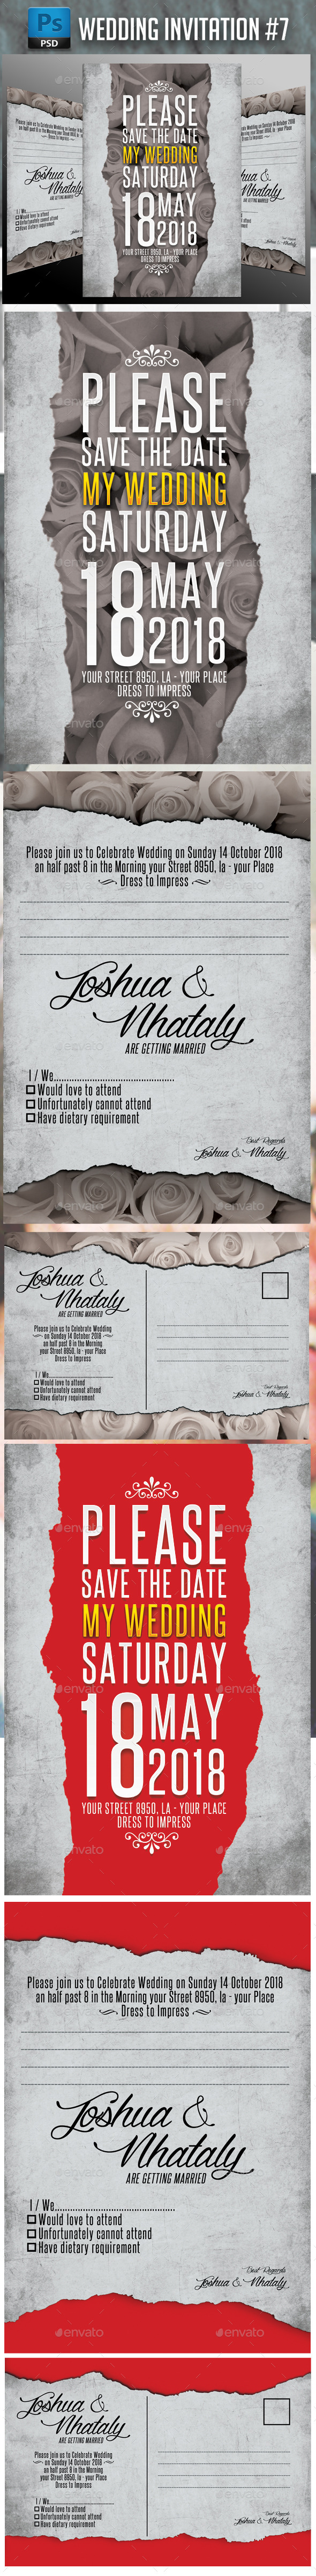 Wedding Invitation #7